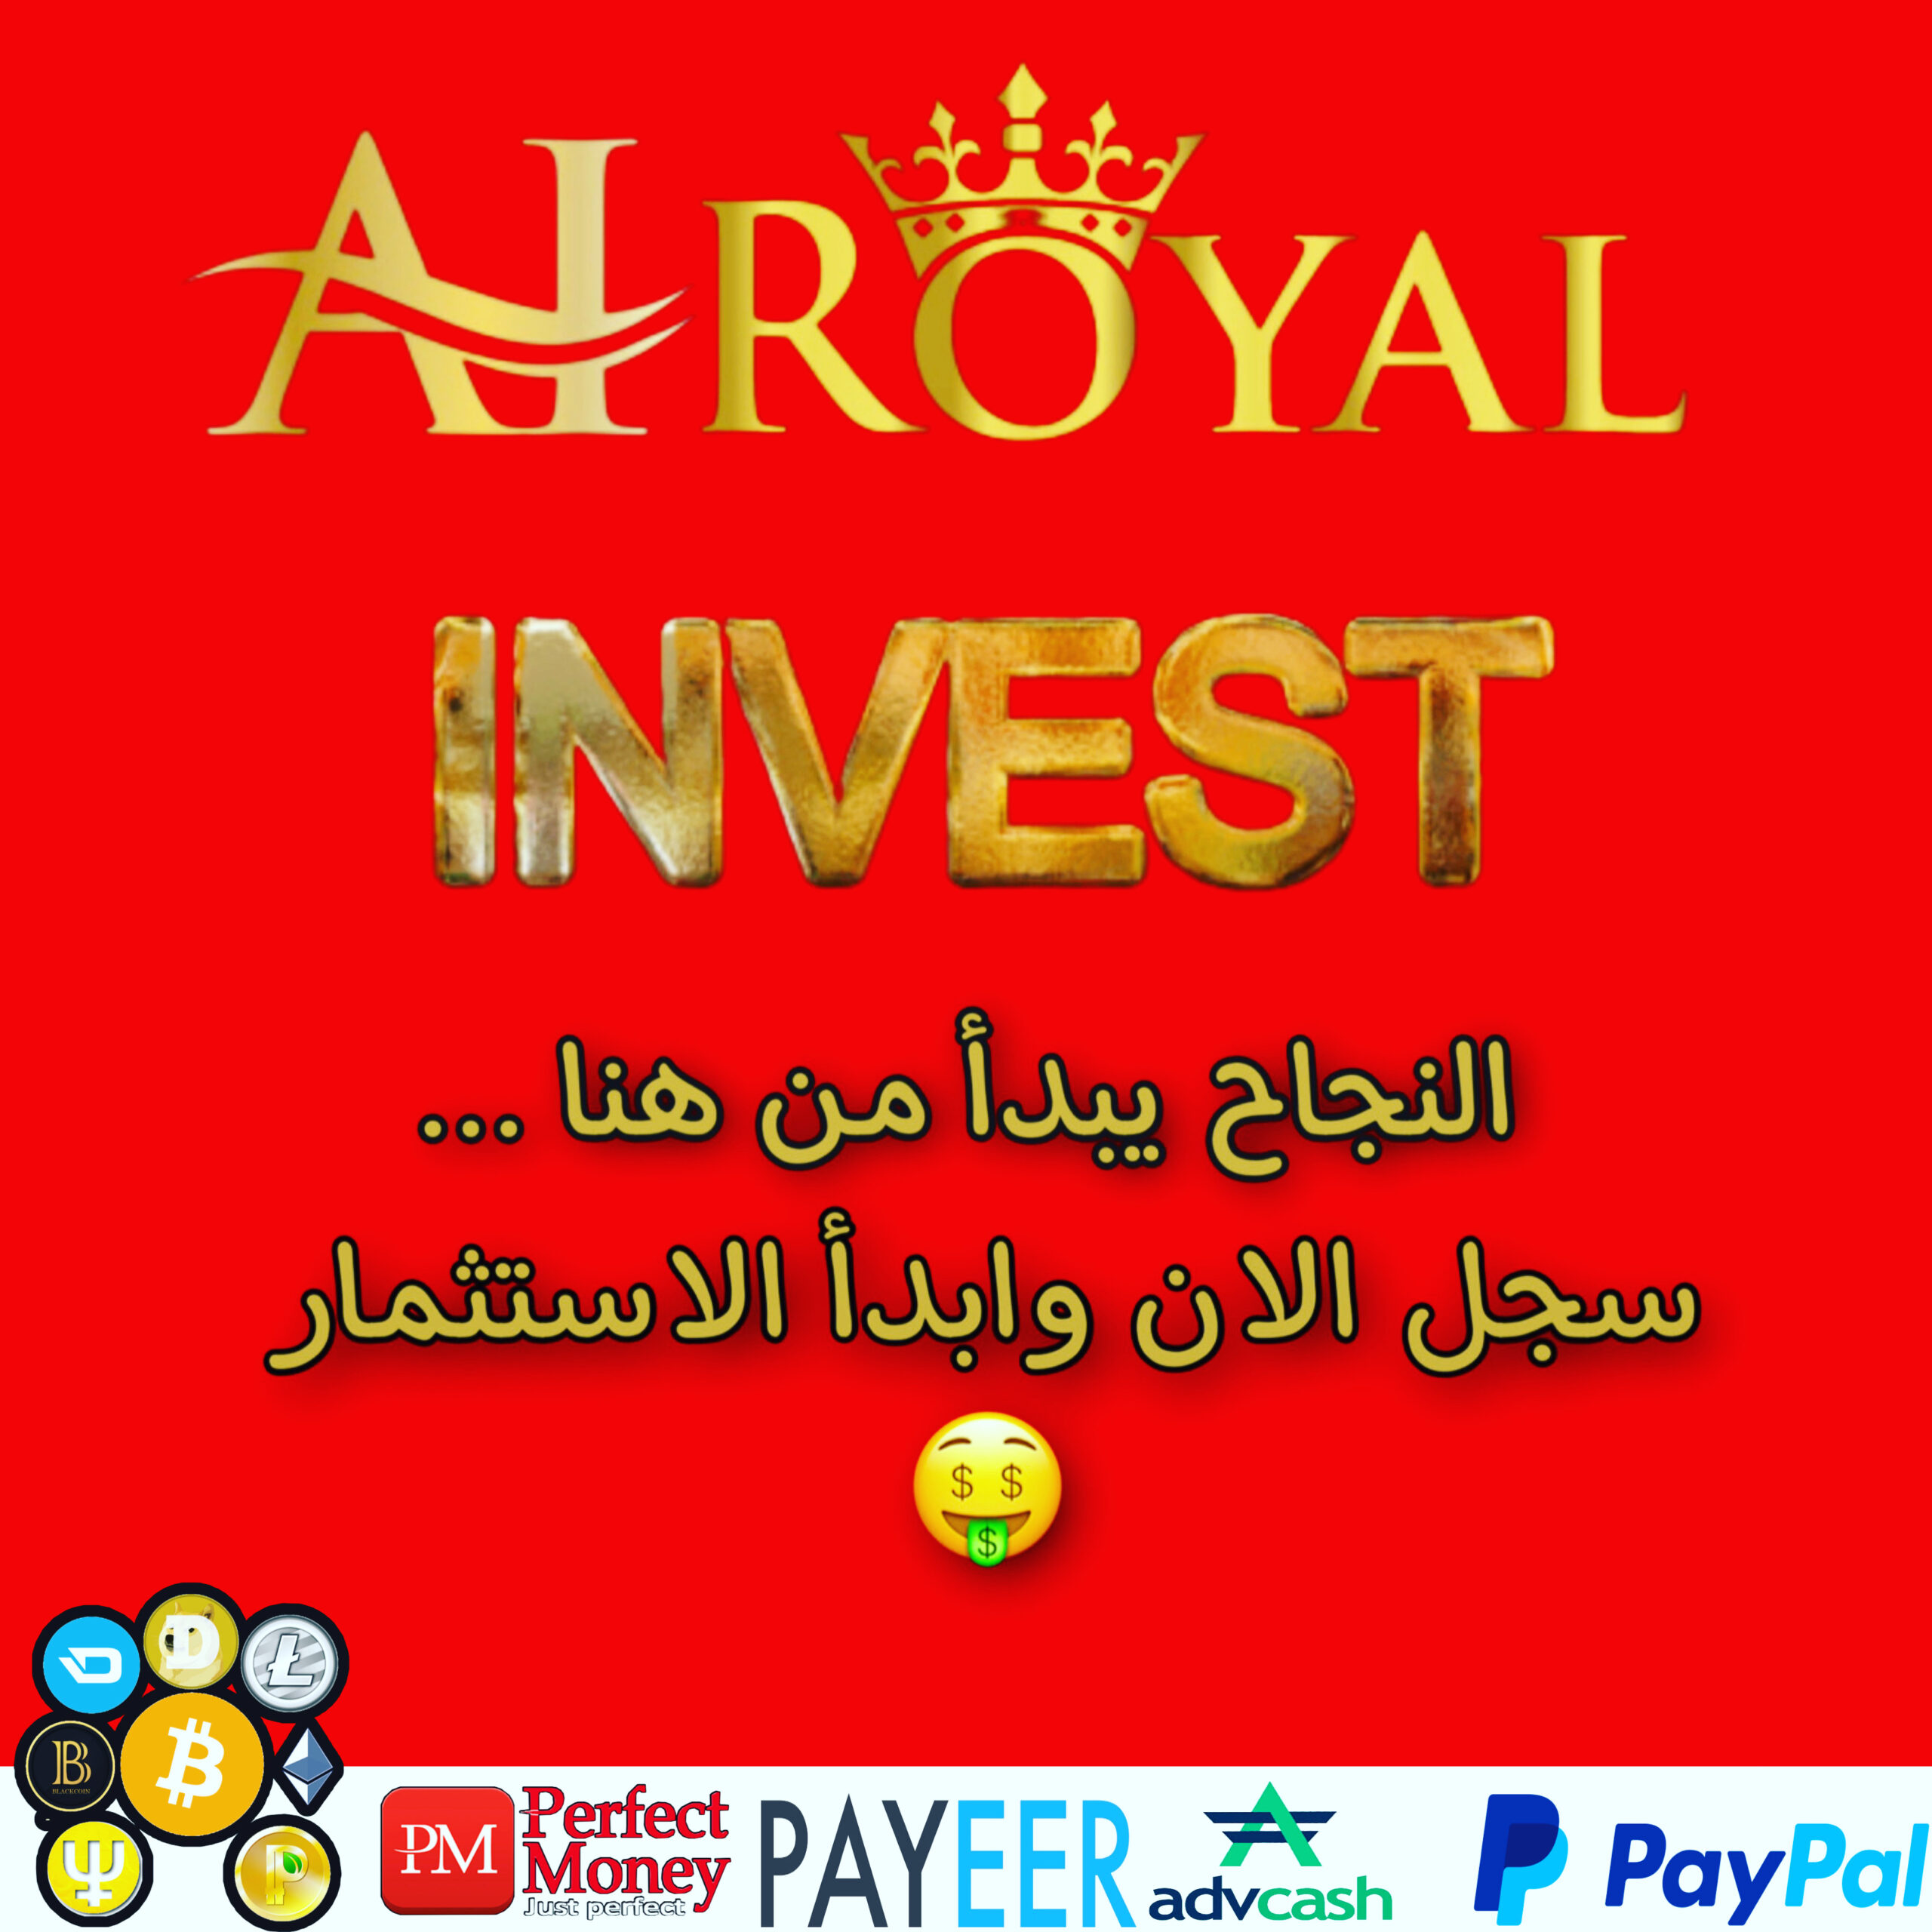 alroyal invest